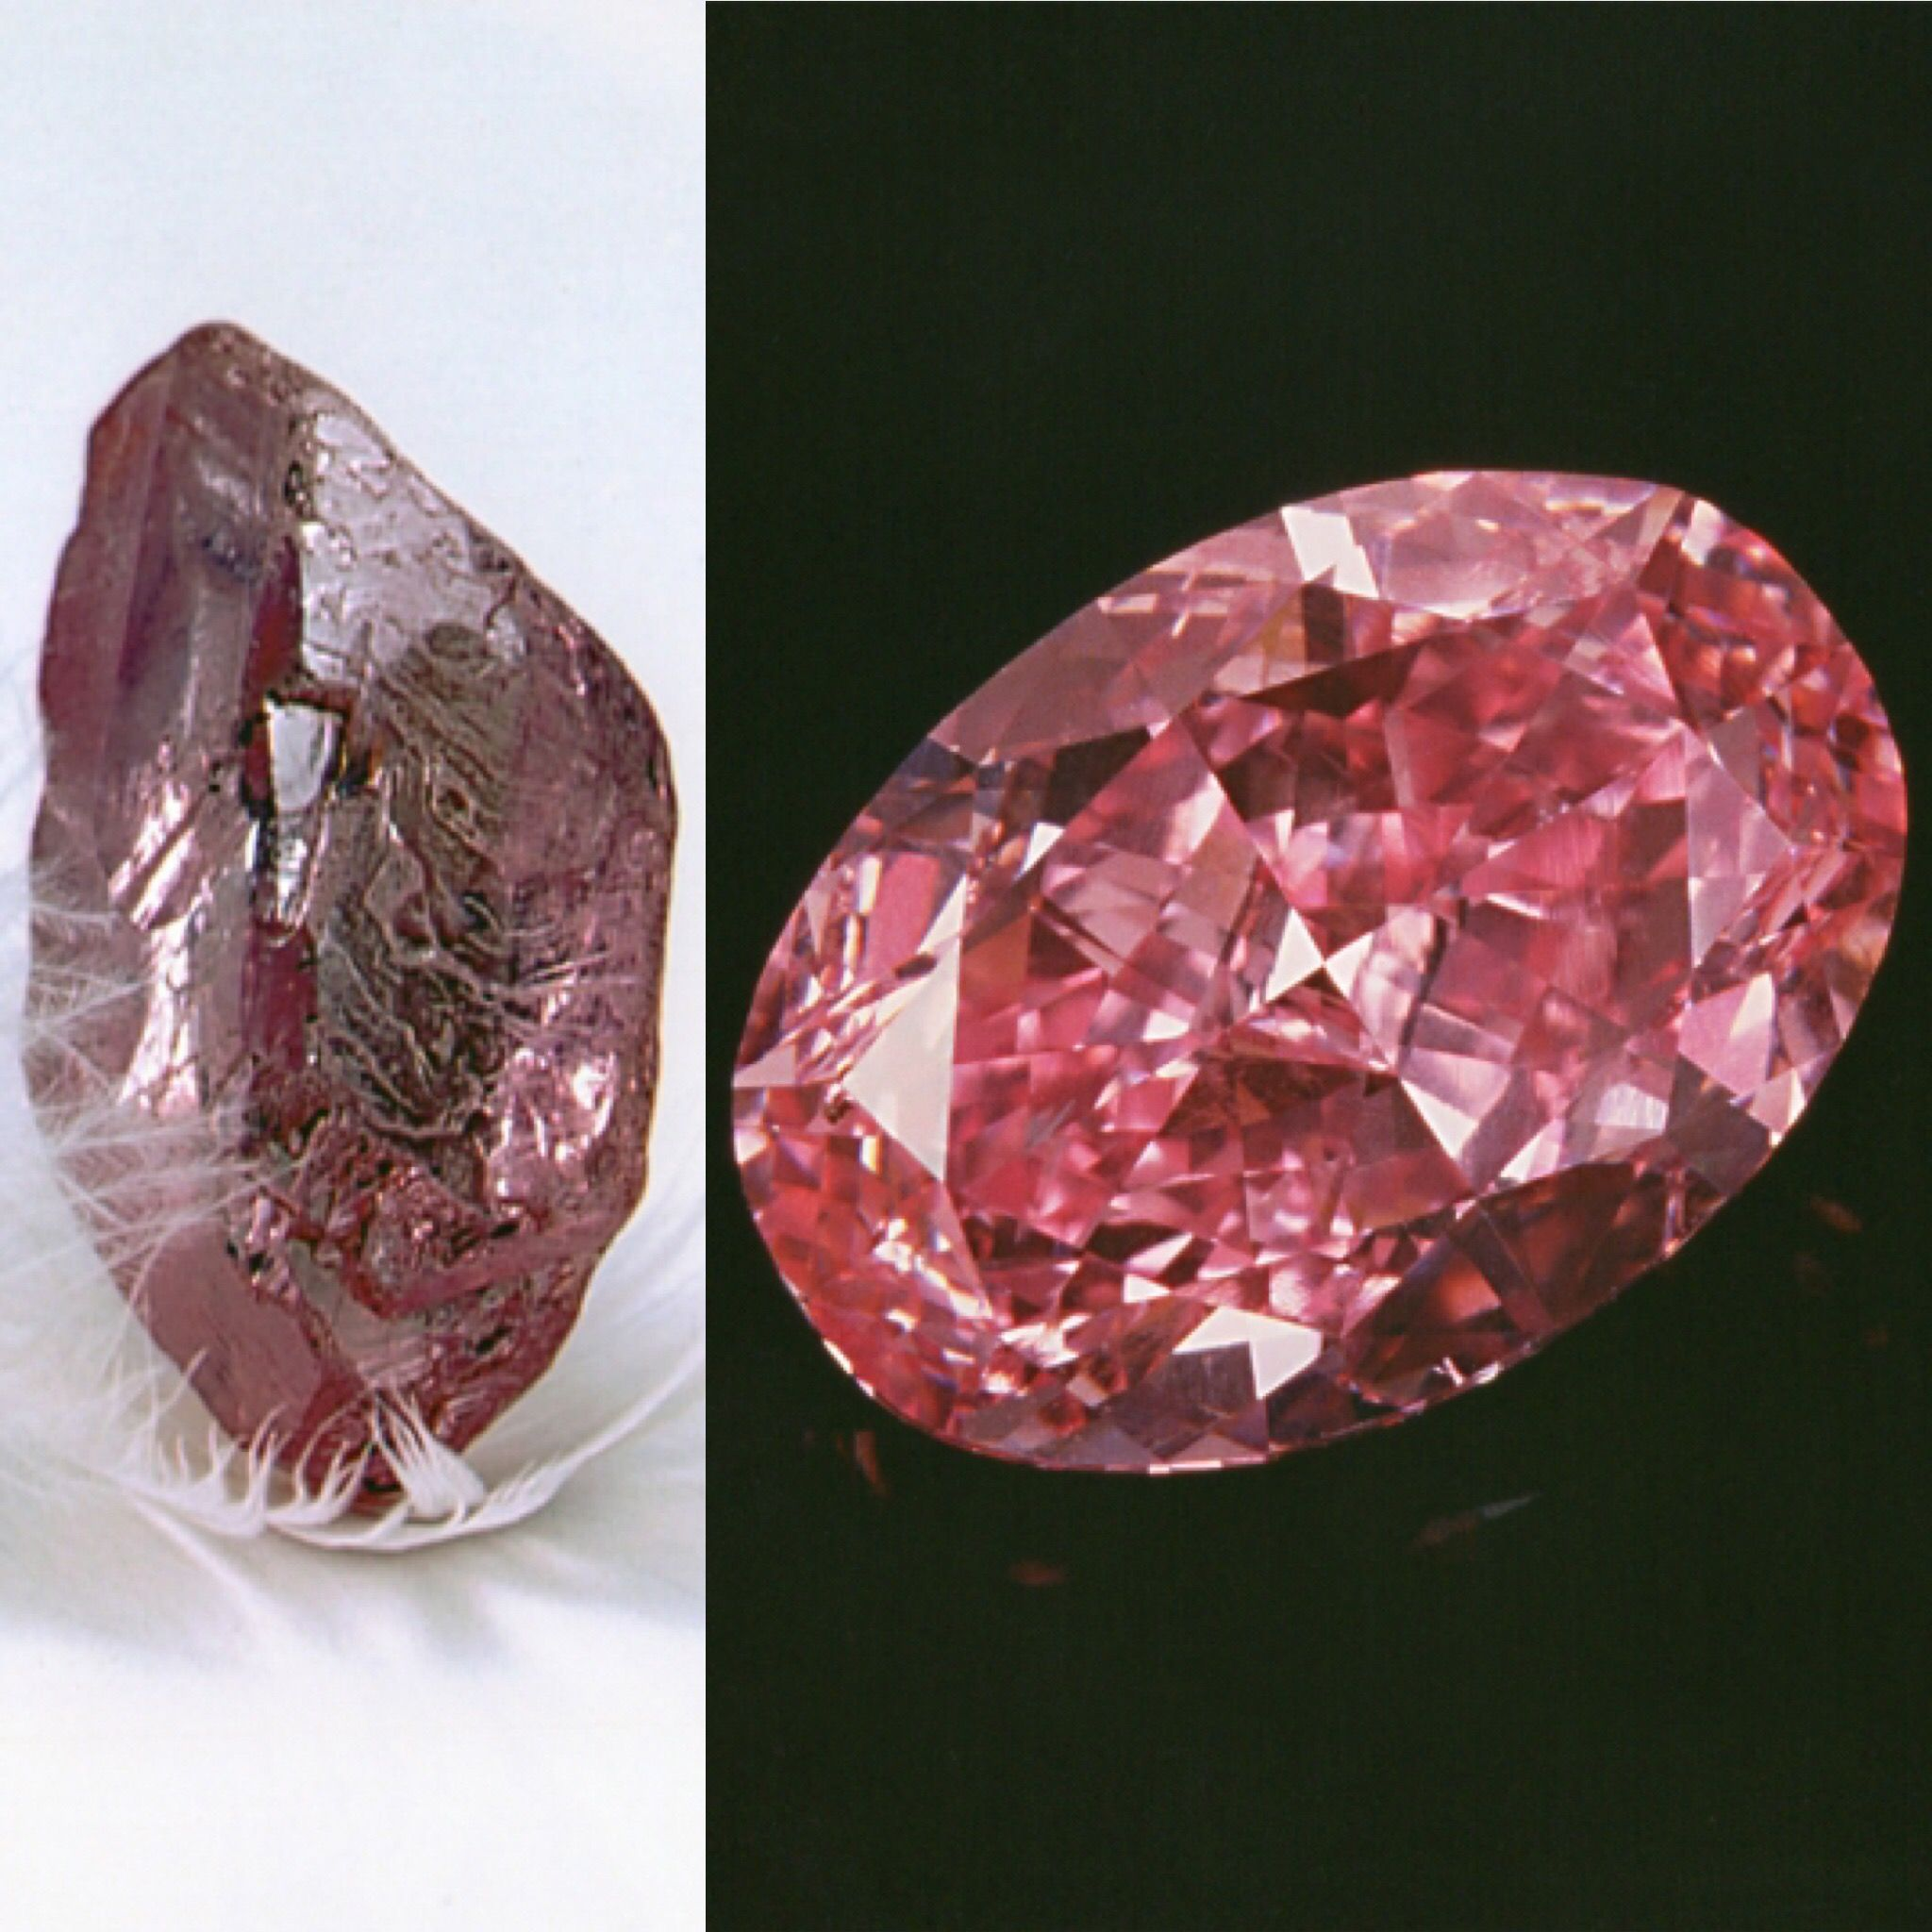 by after rough the oppenheimer carat diamond was purchased pin pink before